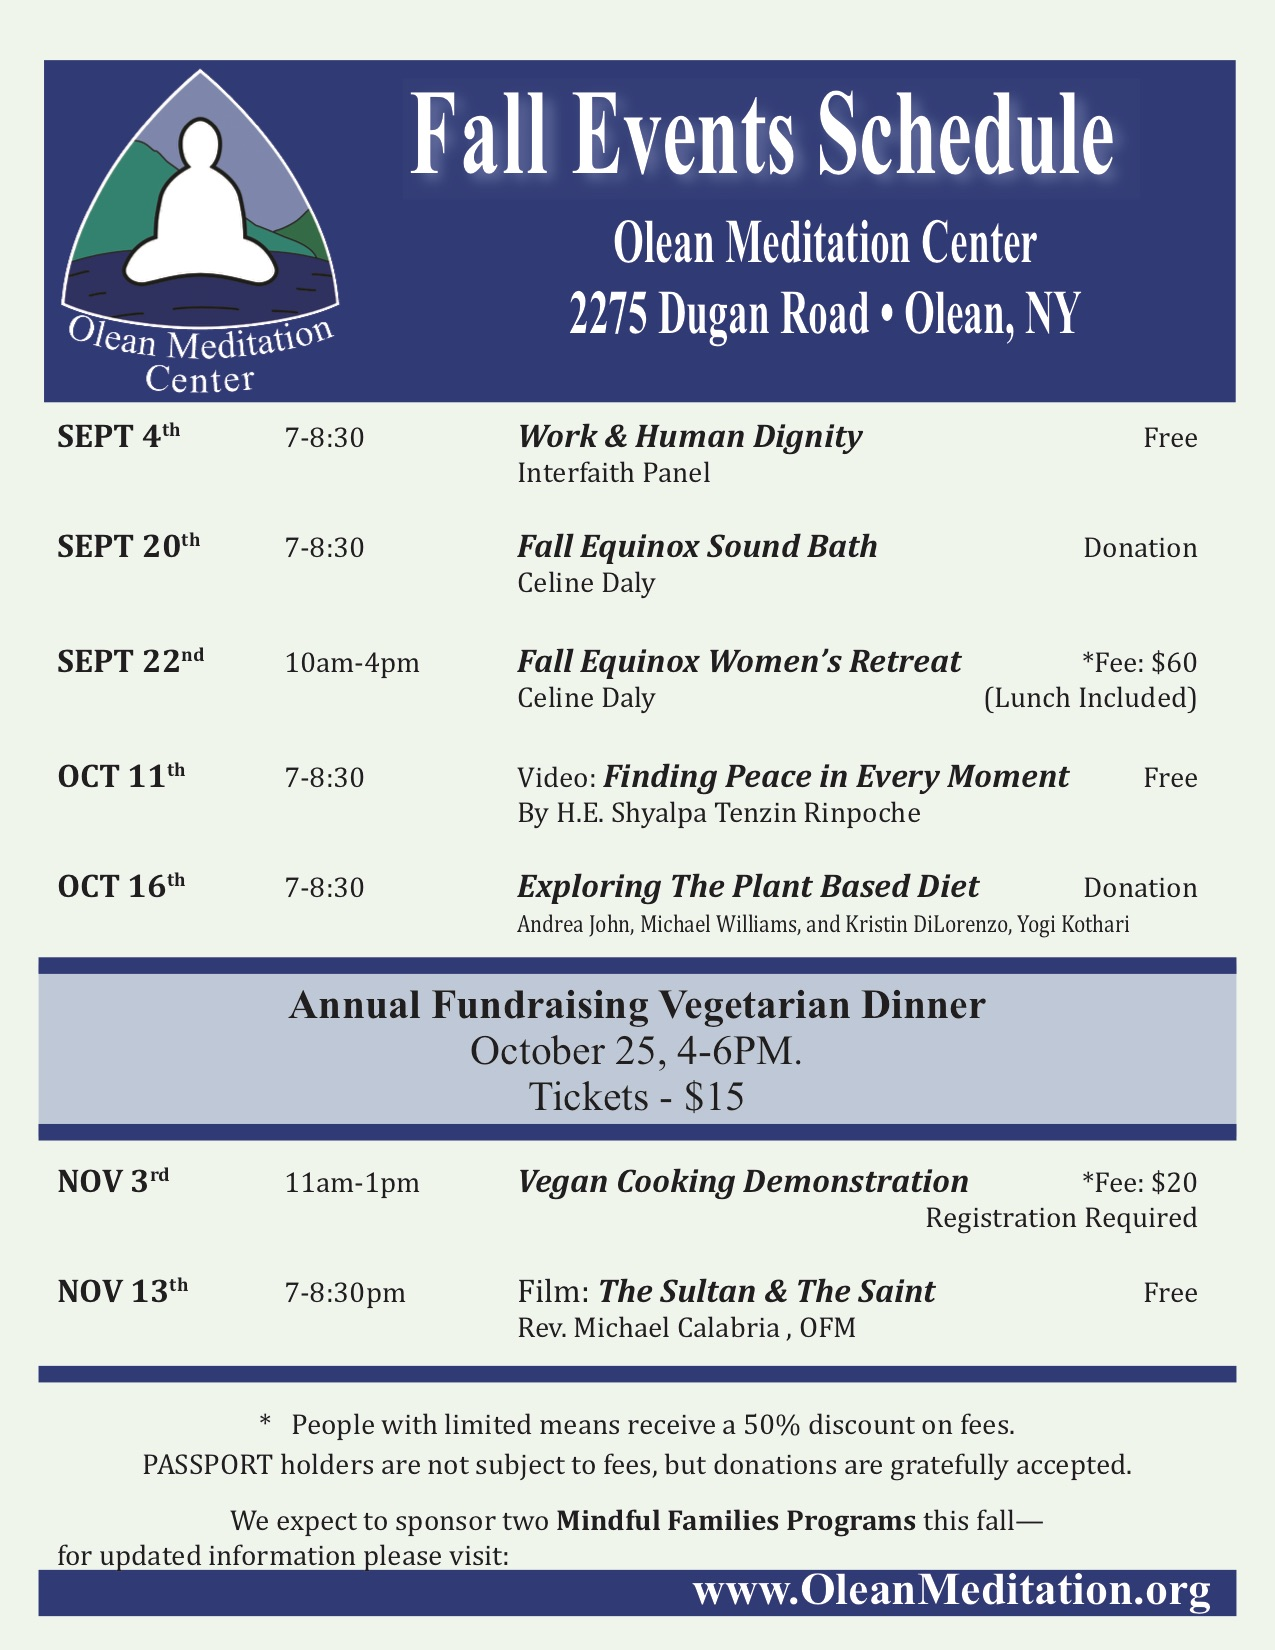 Olean Meditation Center's Fall 2018 schedule